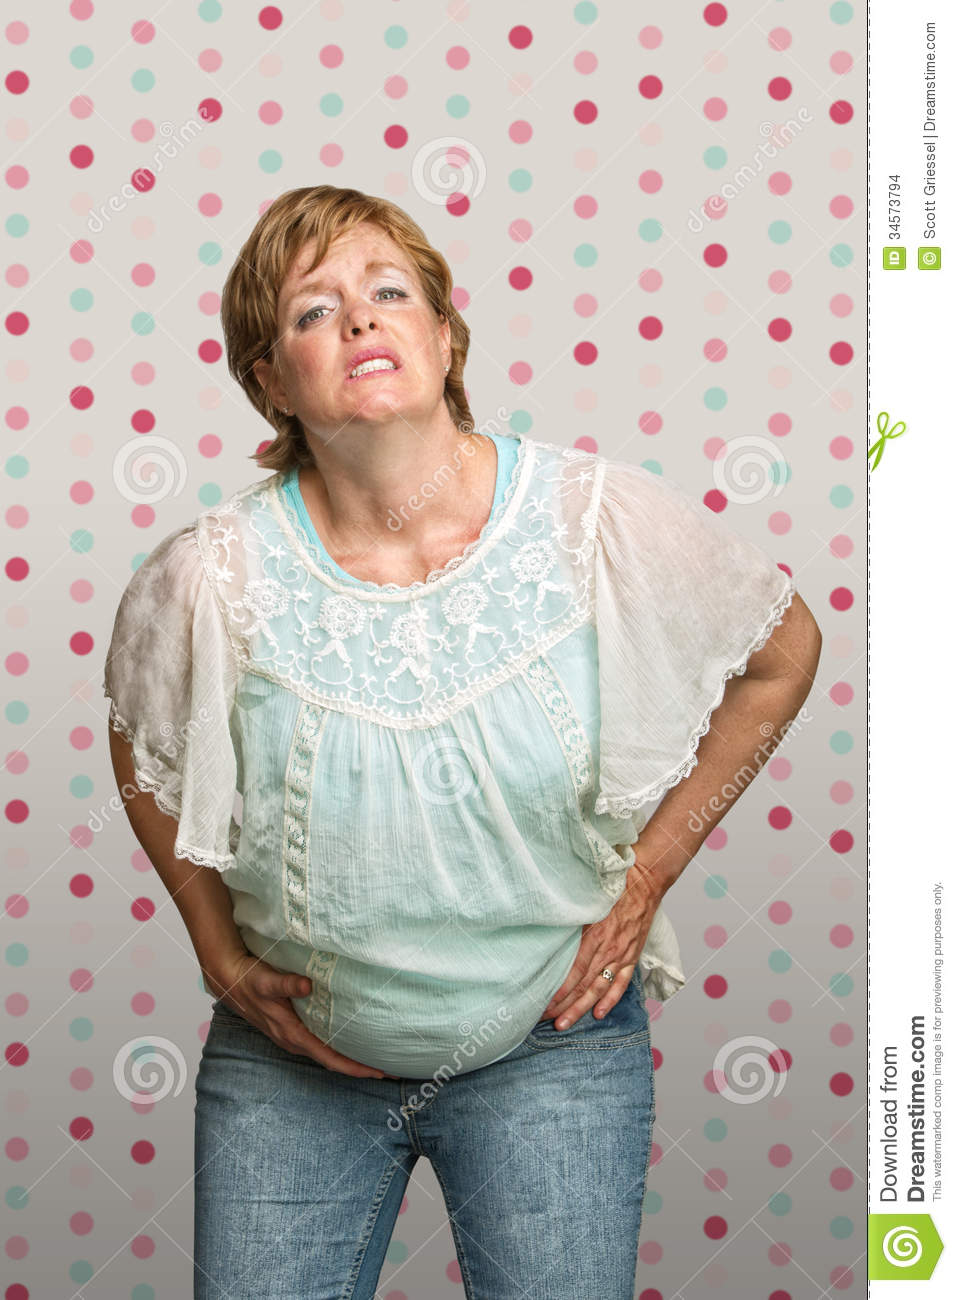 Expecting Woman in Pain stock photo. Image of birth, jeans ...